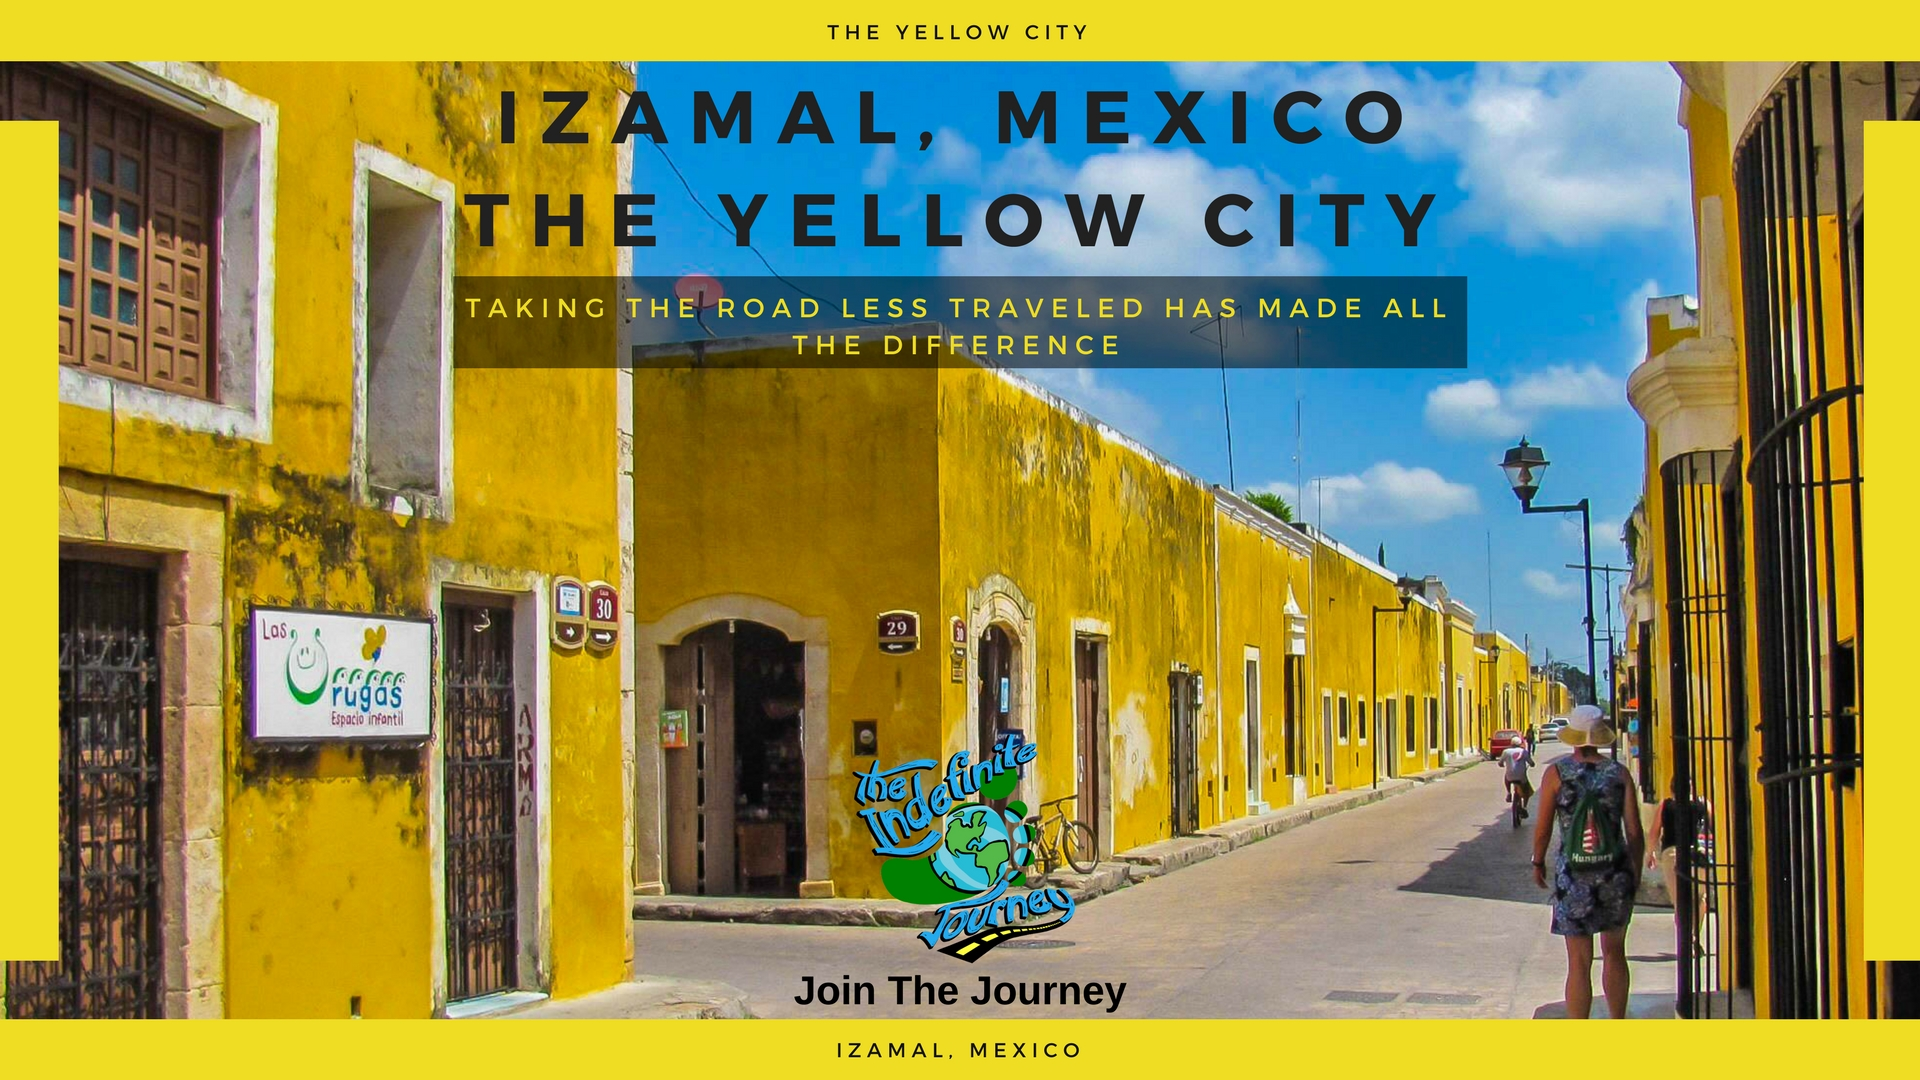 Izamal, Mexico the Yellow City- Taking the Road Less Traveled Has Made All The Difference